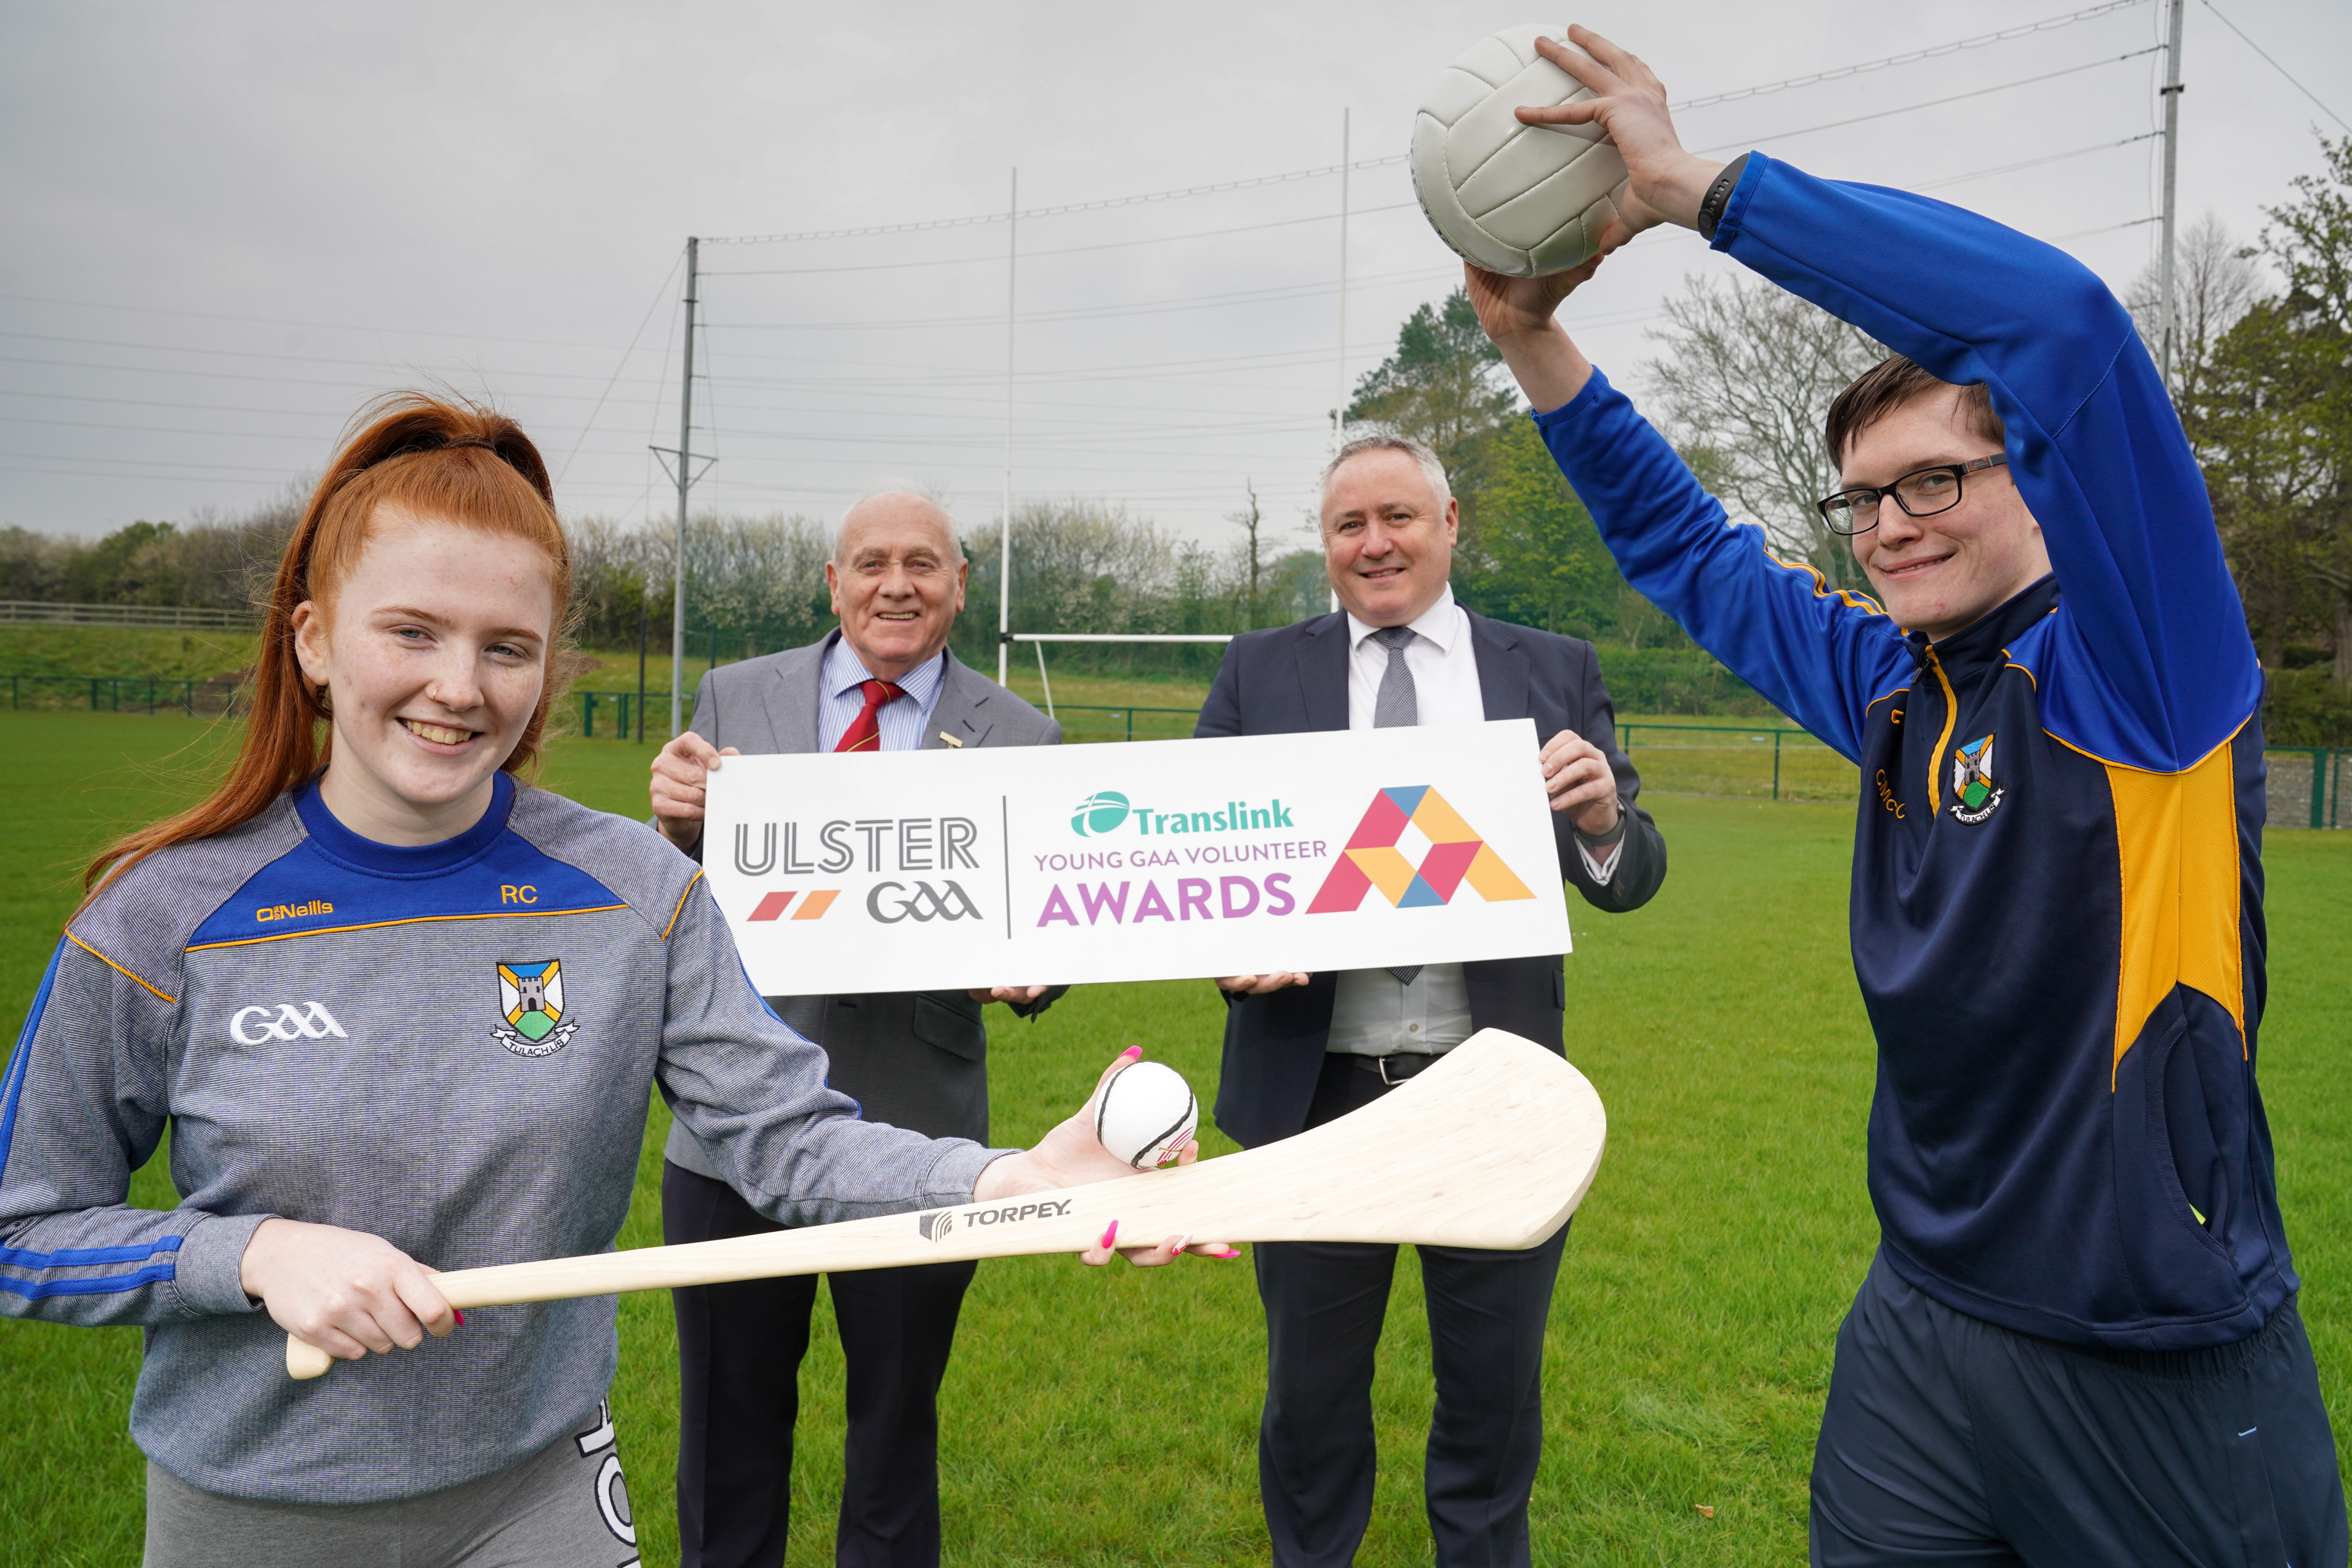 Translink launch search for outstanding young GAA volunteers